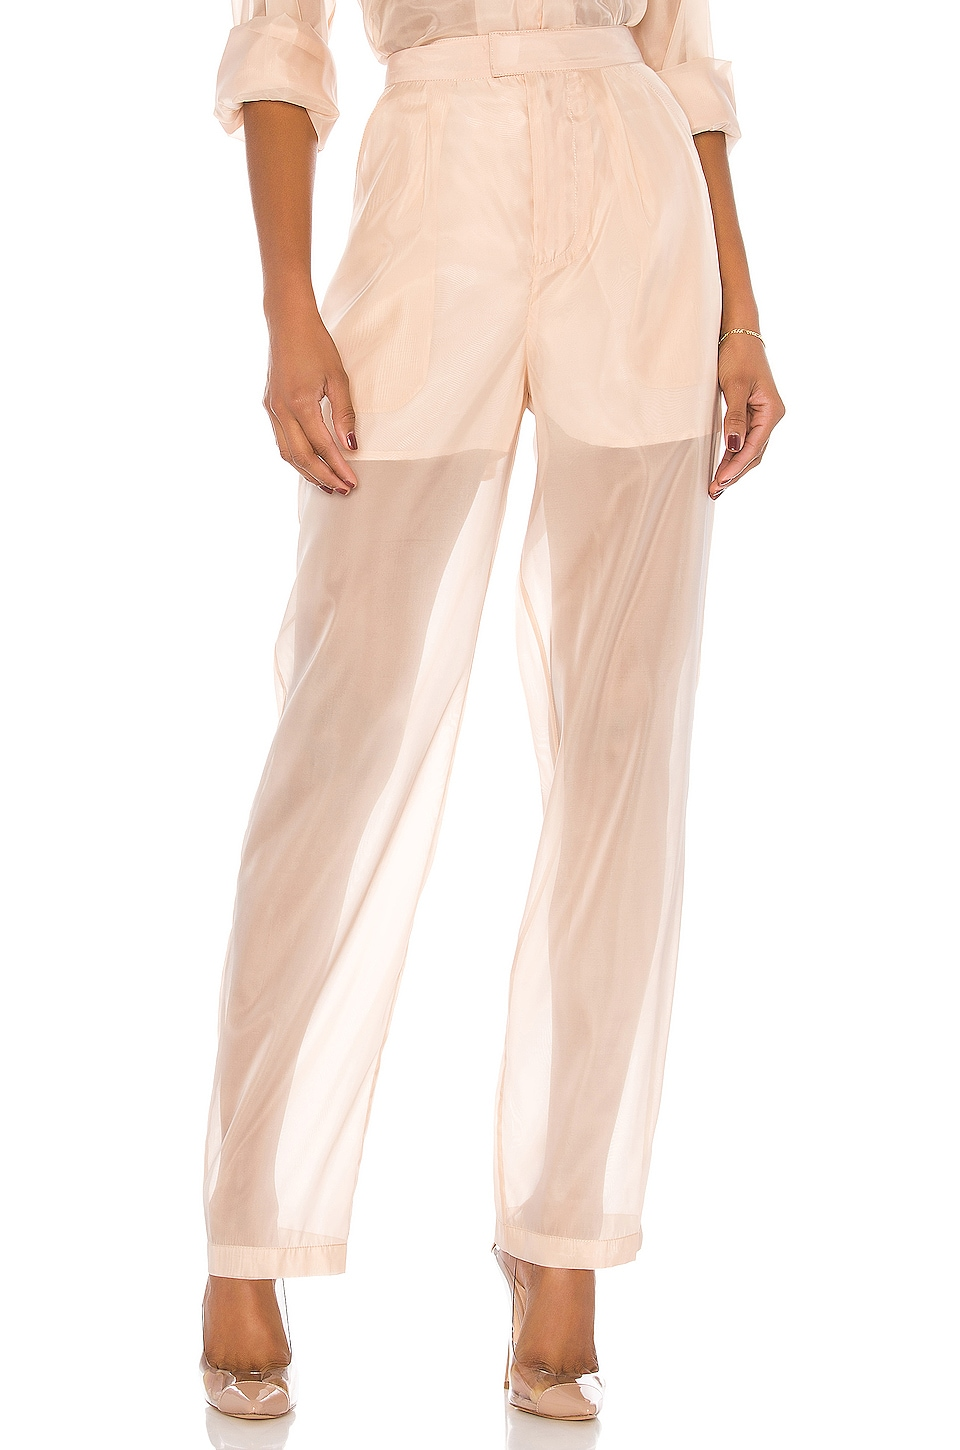 L'Academie The Damiana Pant in Nude